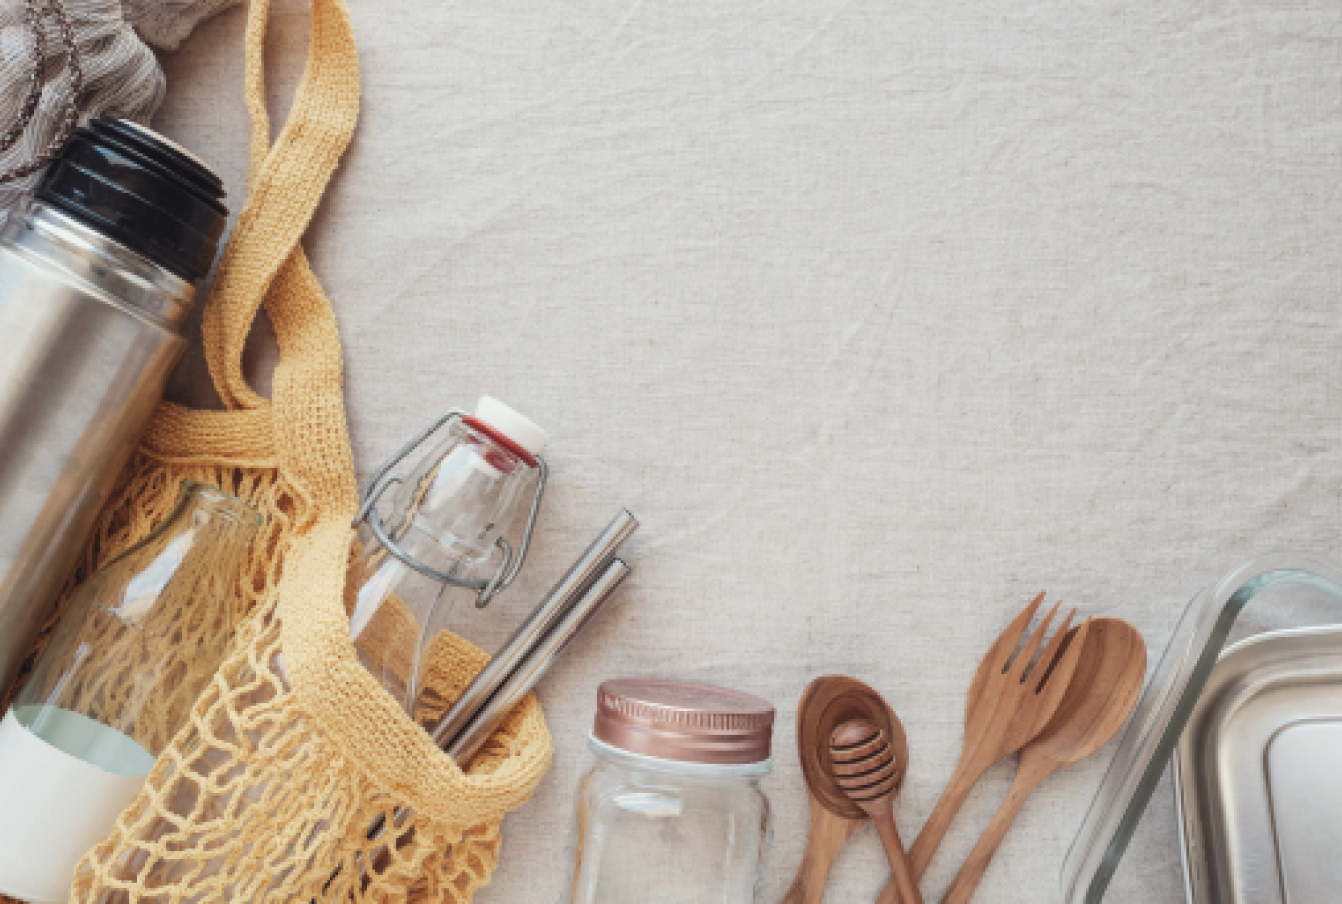 Plastic-free alternatives like wooden cutlery, metal straws, glass bottles and a coffee thermos.